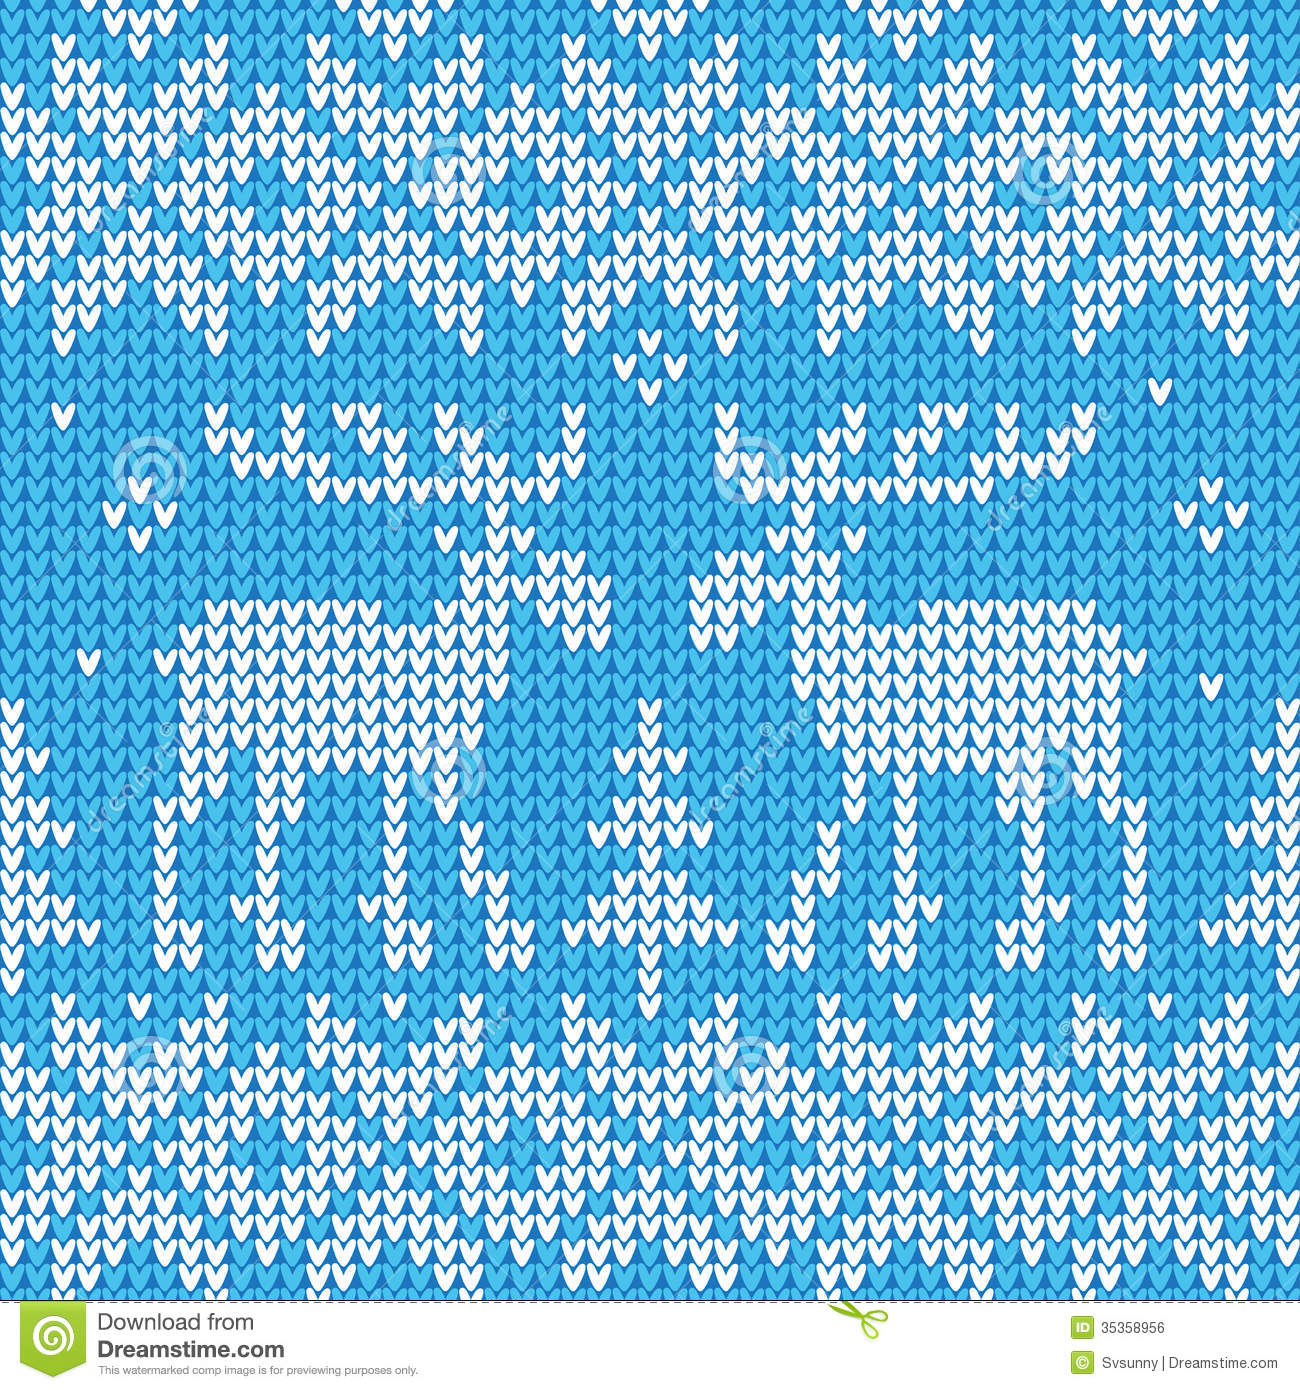 Knitting Pattern Vector Download : Scandinavian Style Seamless Knitted Pattern With Deers ...